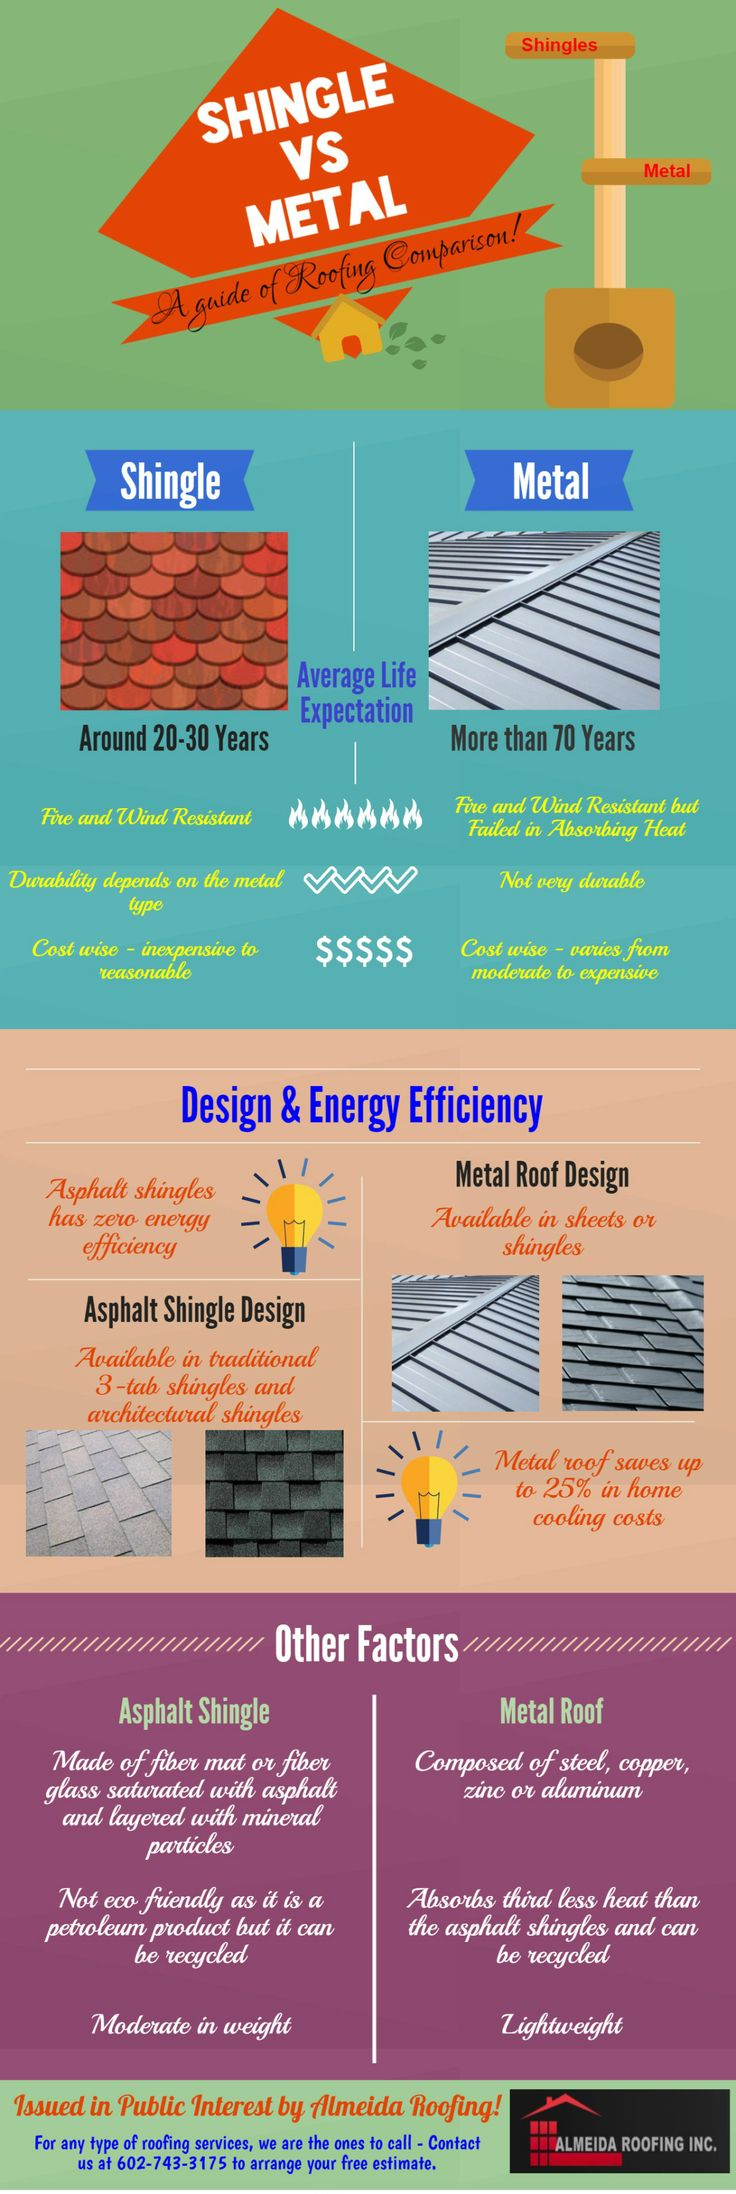 51 best metal roof images – Is Metal Roofing Cheaper Than Shingles